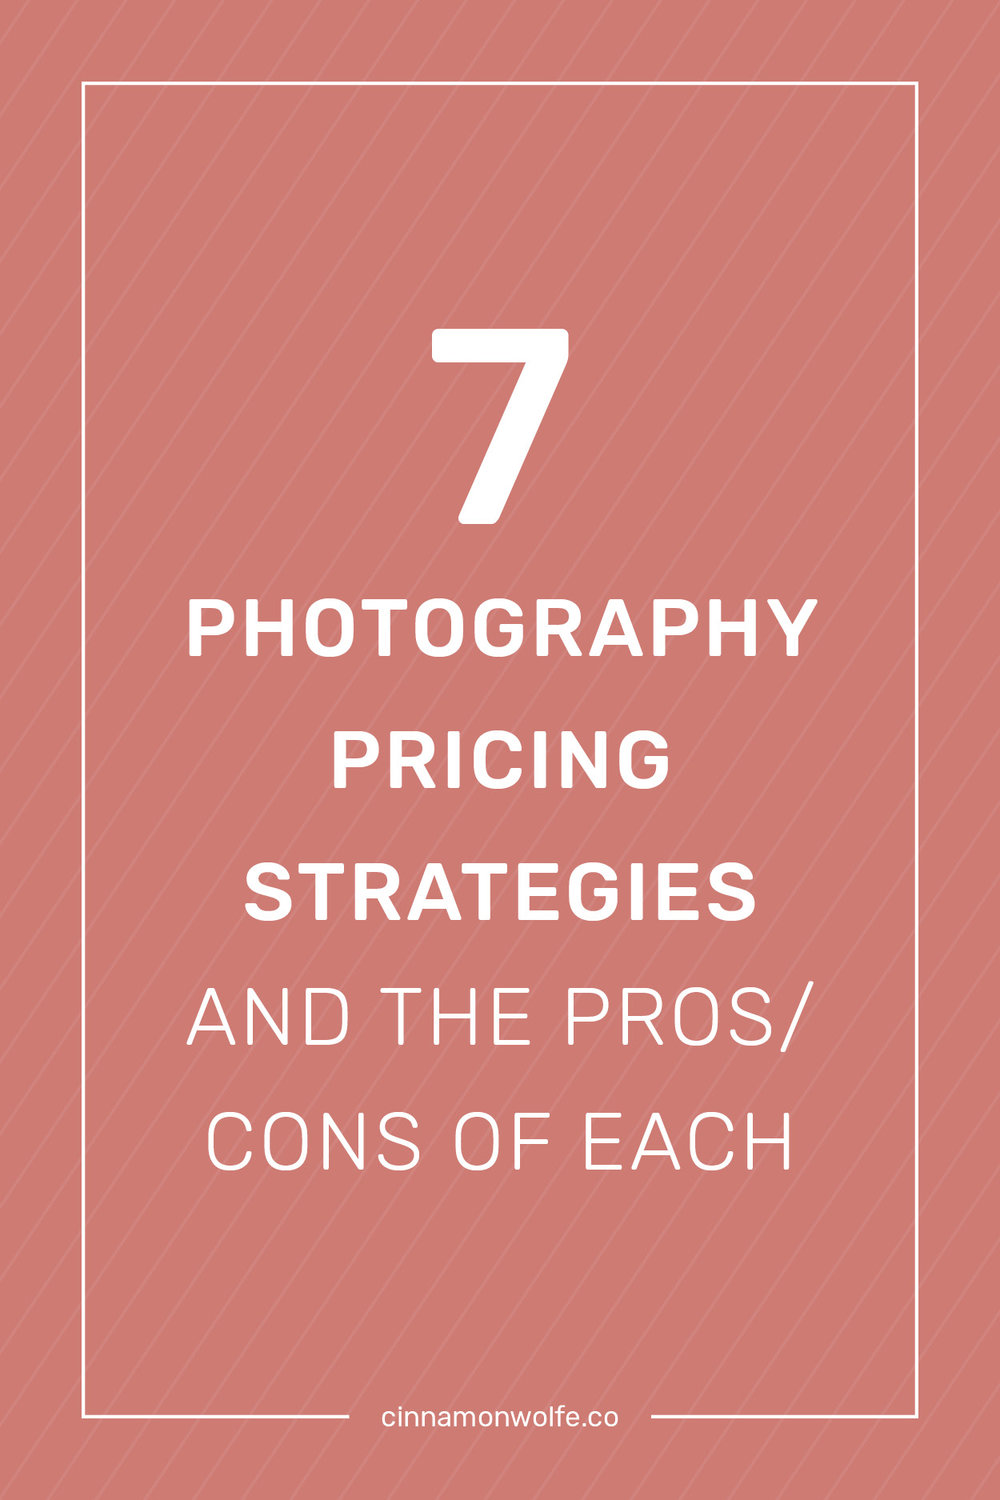 7 photography pricing strategies & the pros/cons of each     Cinnamonwolfe.co